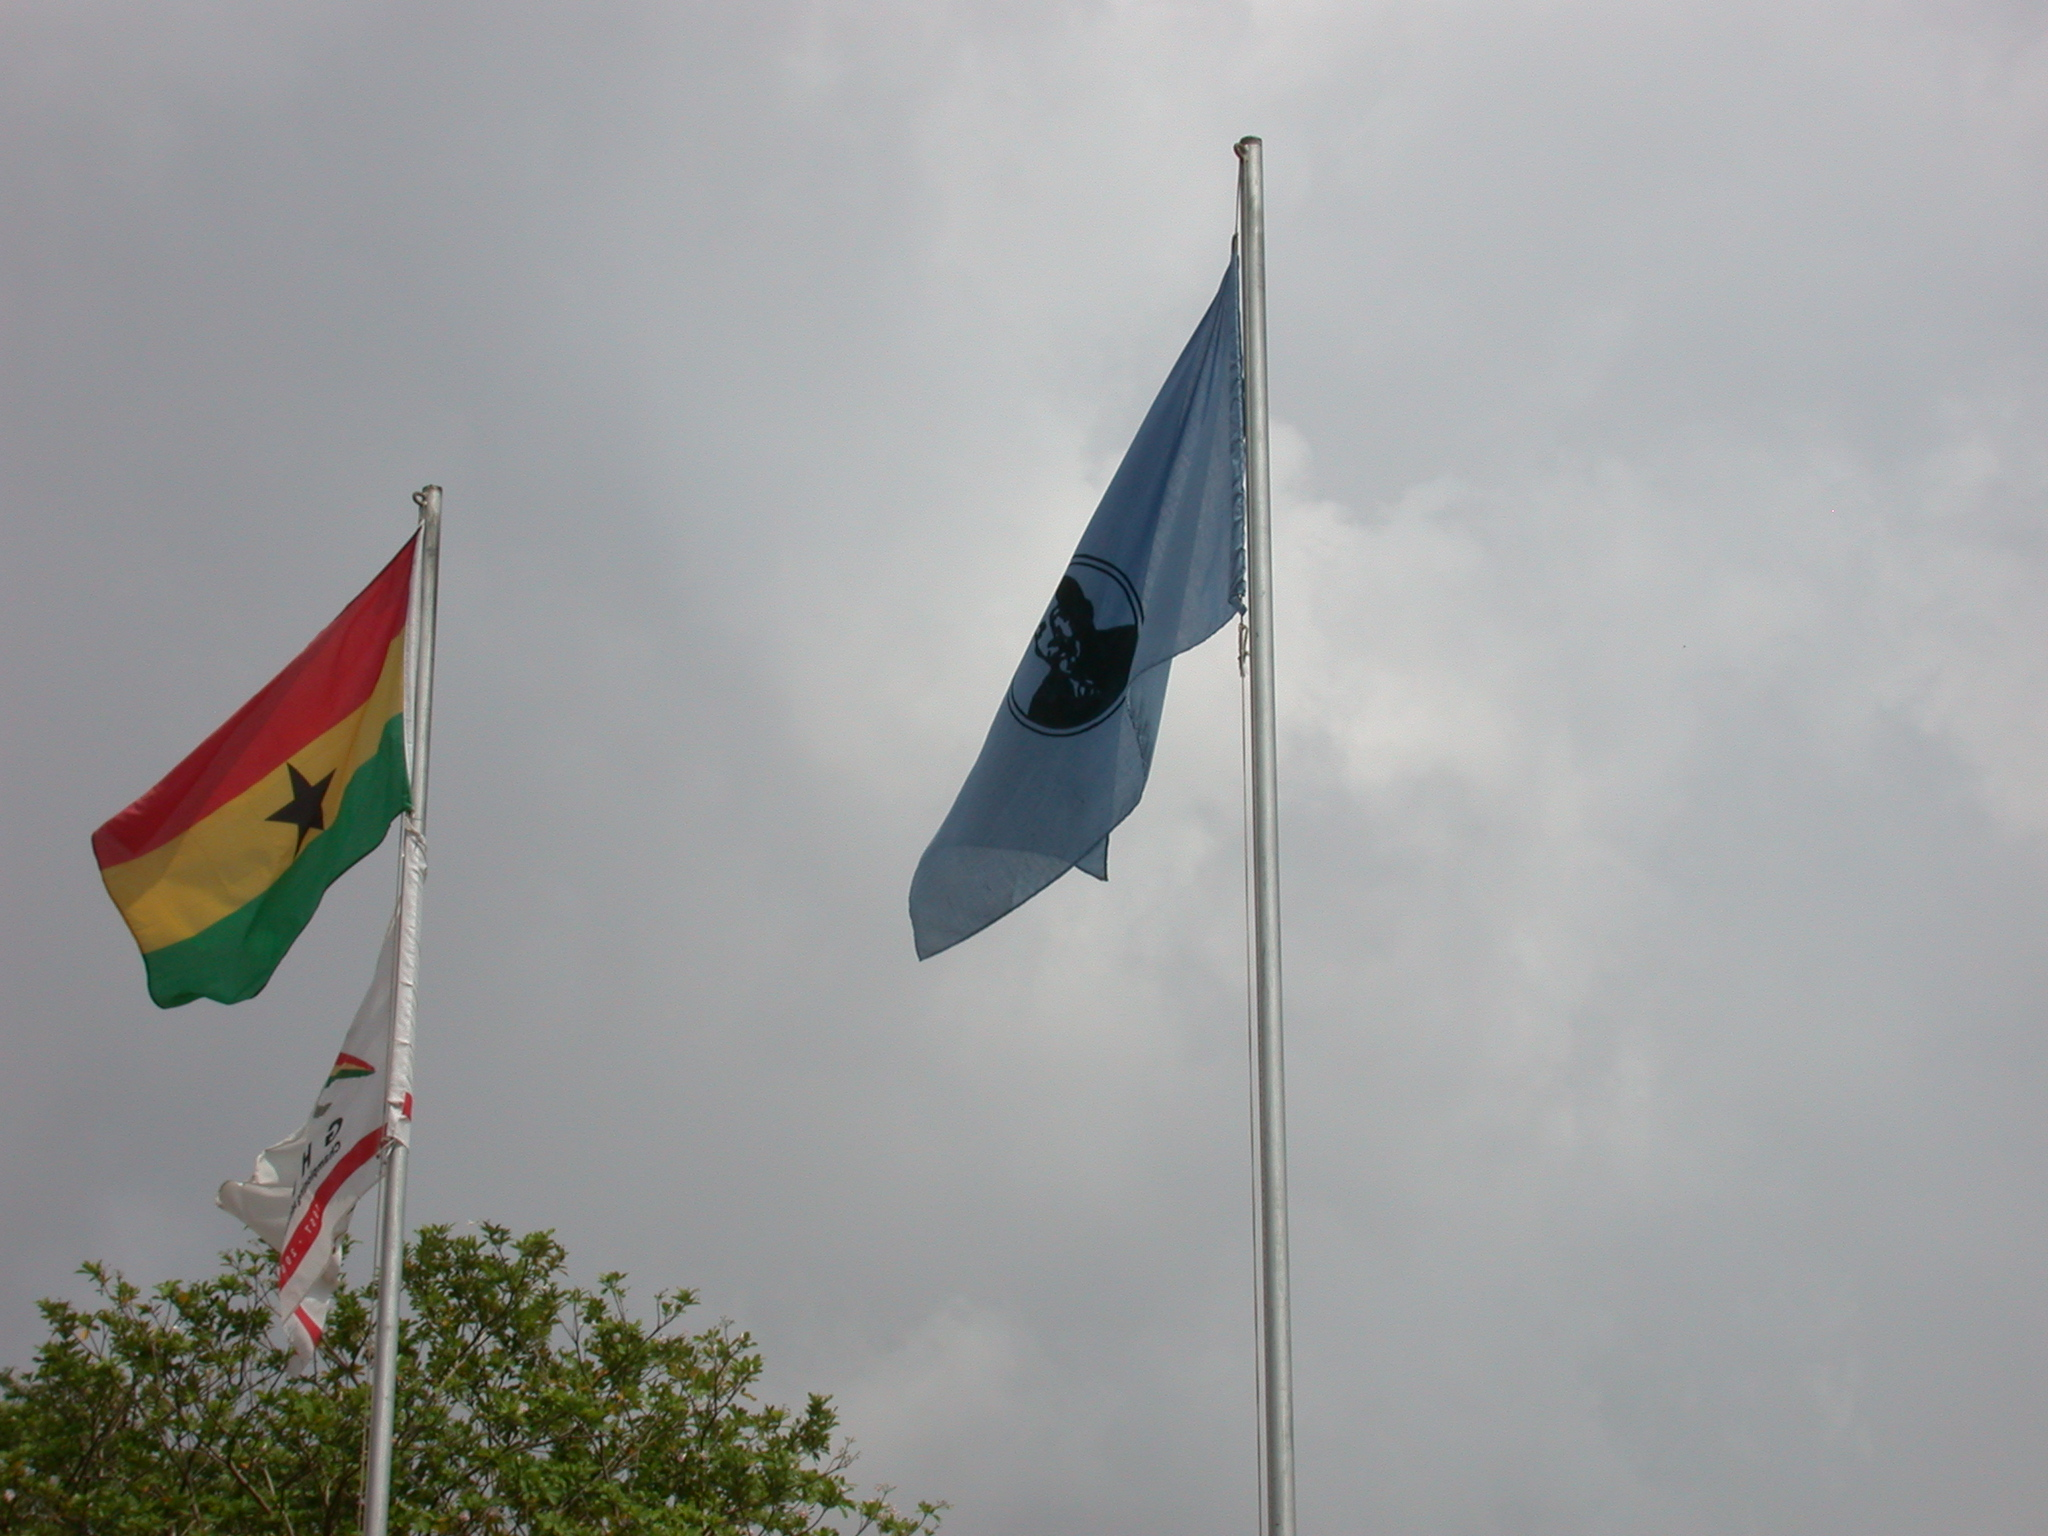 Flags Flying at WEB DuBois Memorial Centre for Pan African Culture, Accra, Ghana